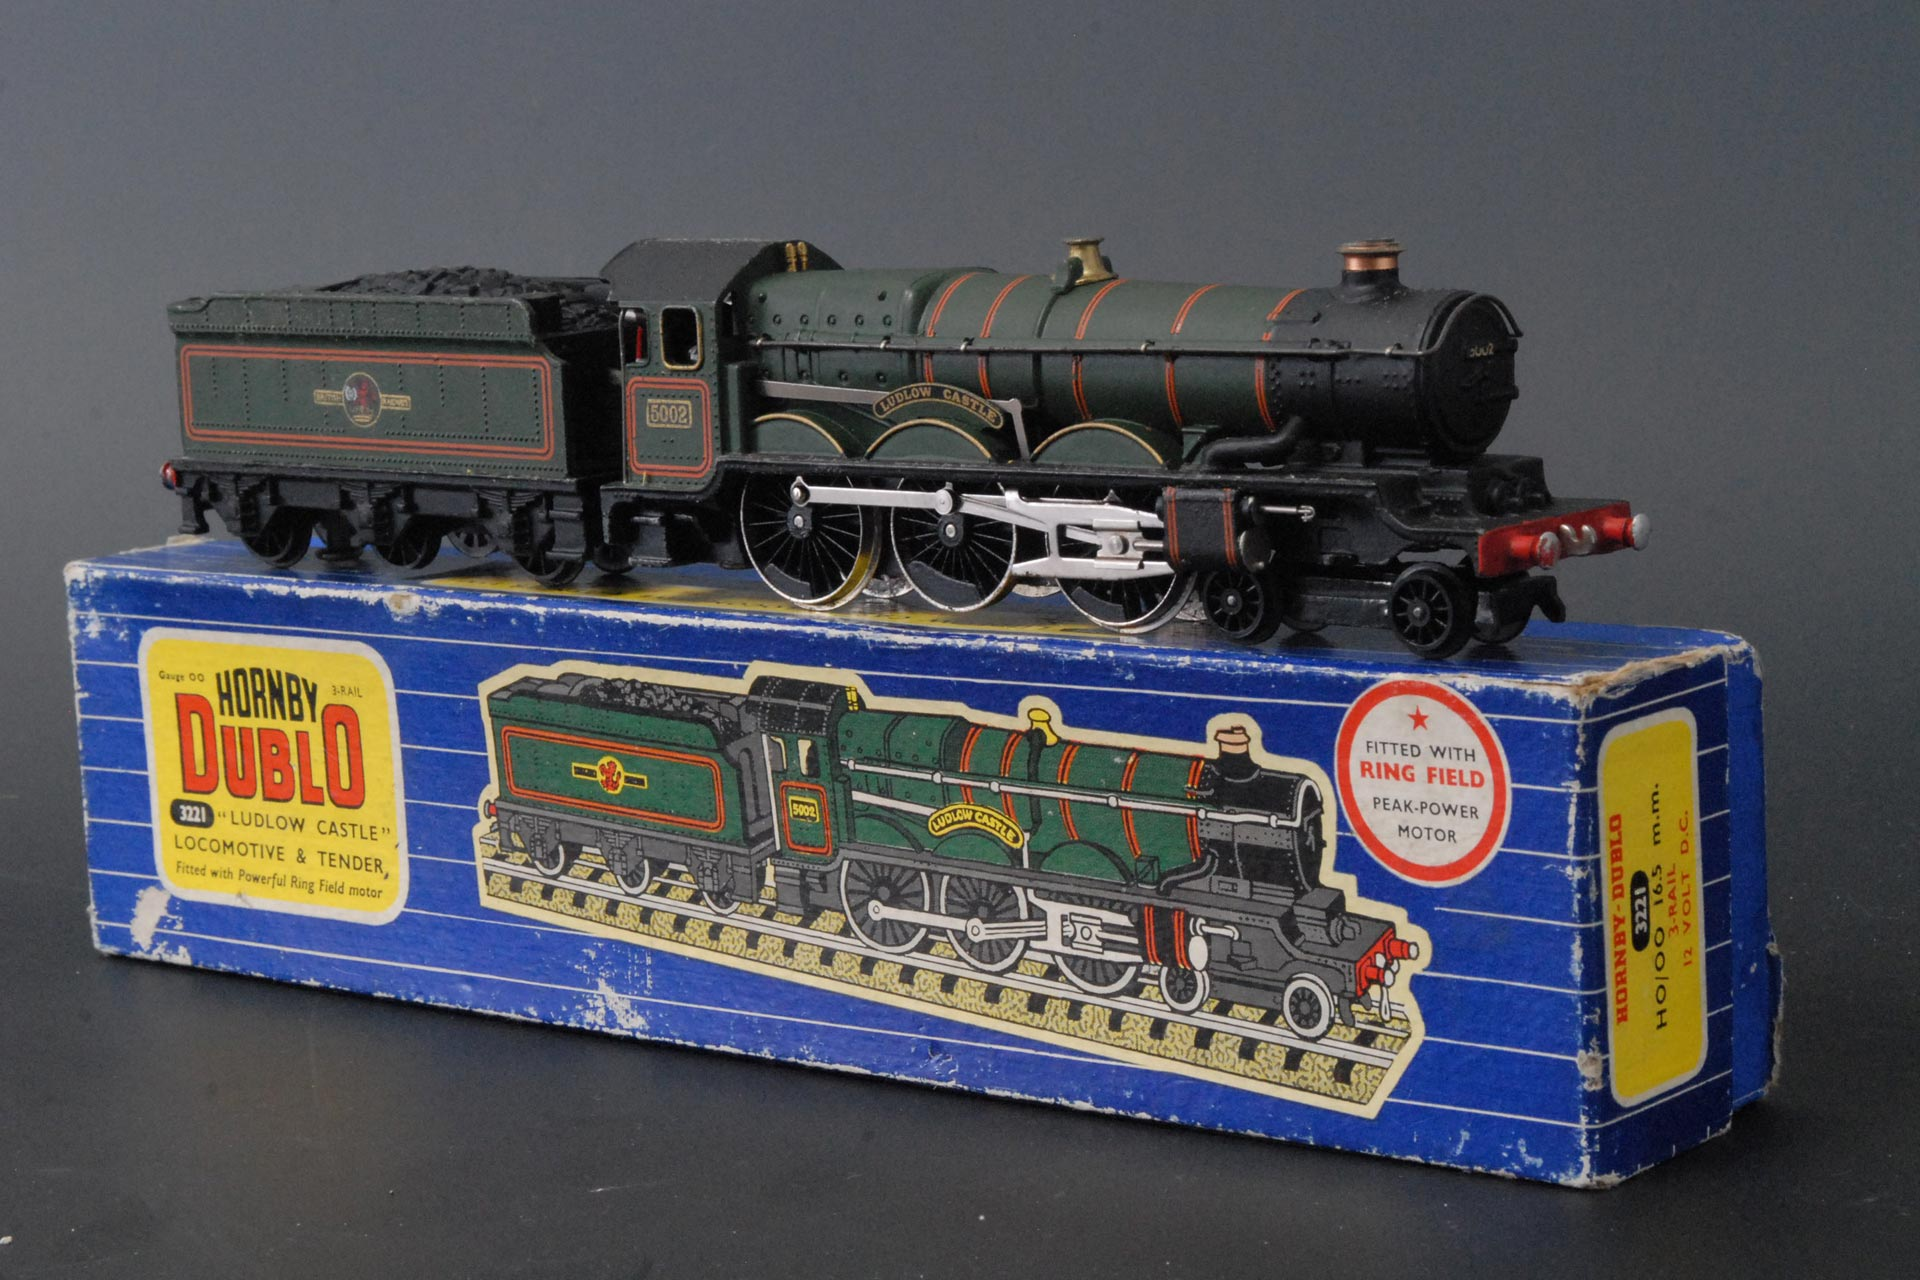 Premier Model Railways buy Hornby Dublo Trains